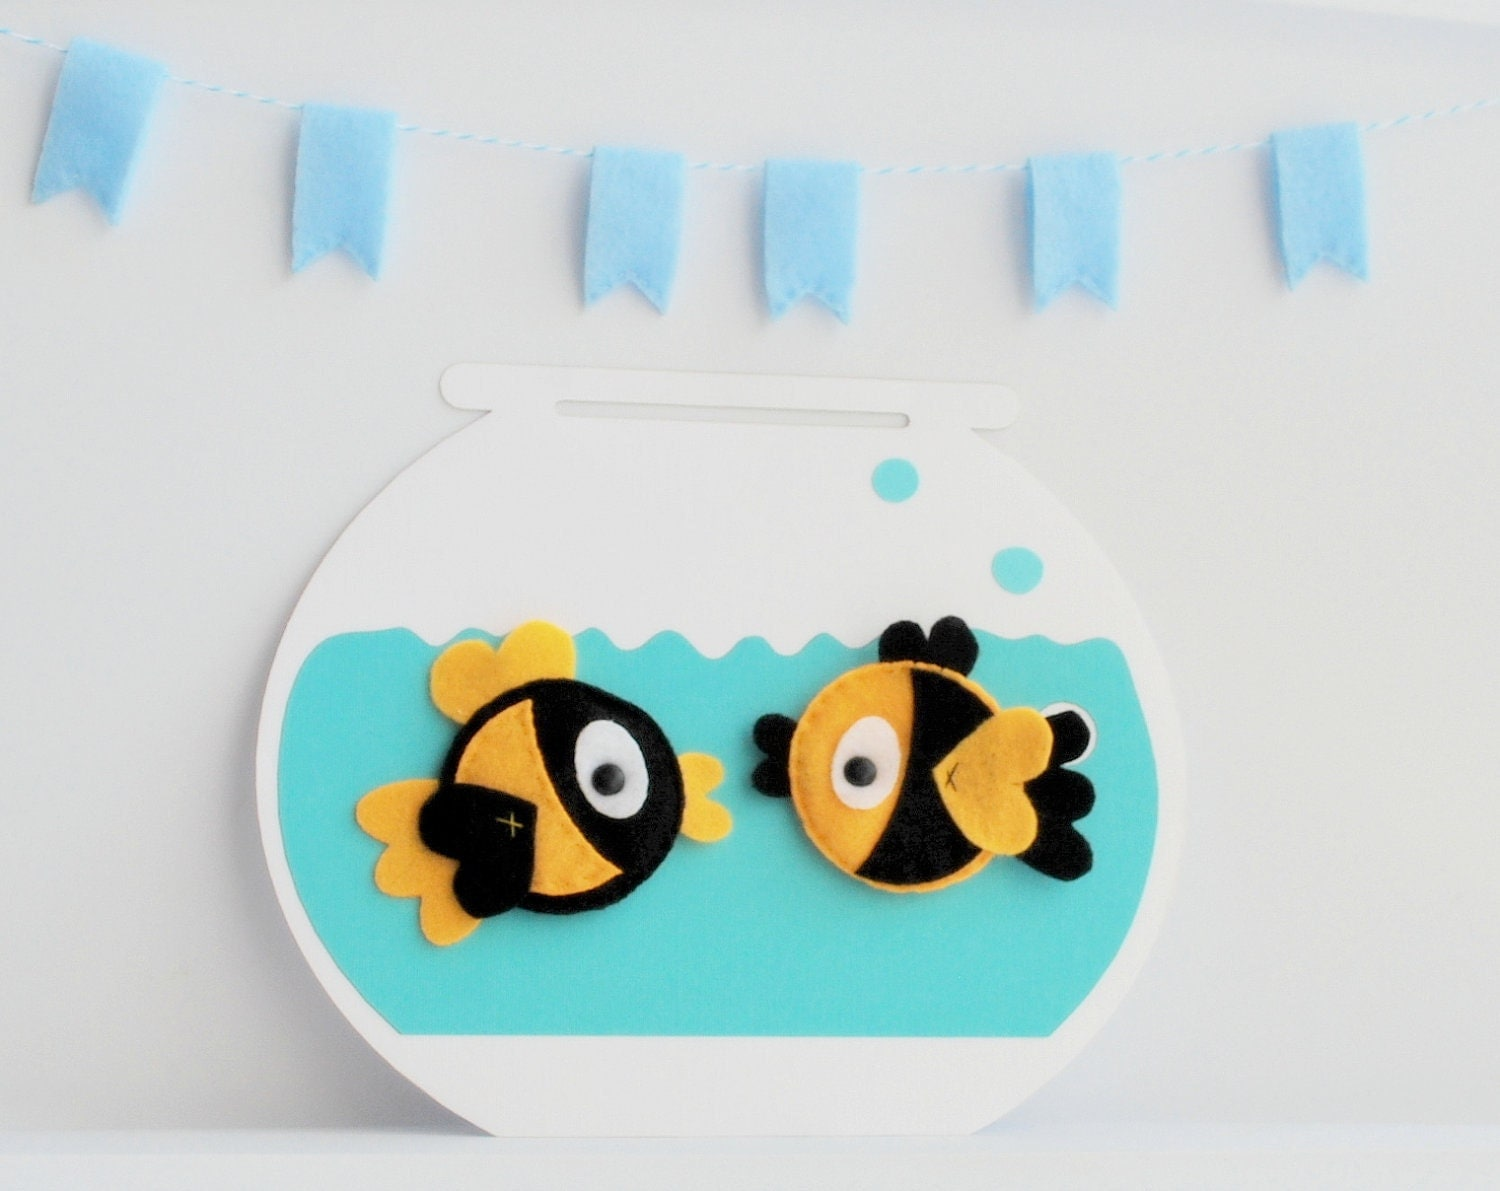 MOVING SALE 2 Felt Fish Magnets - 2   Eco-Friendly  Black and Canary Yellow Fish Magnets for your fridge